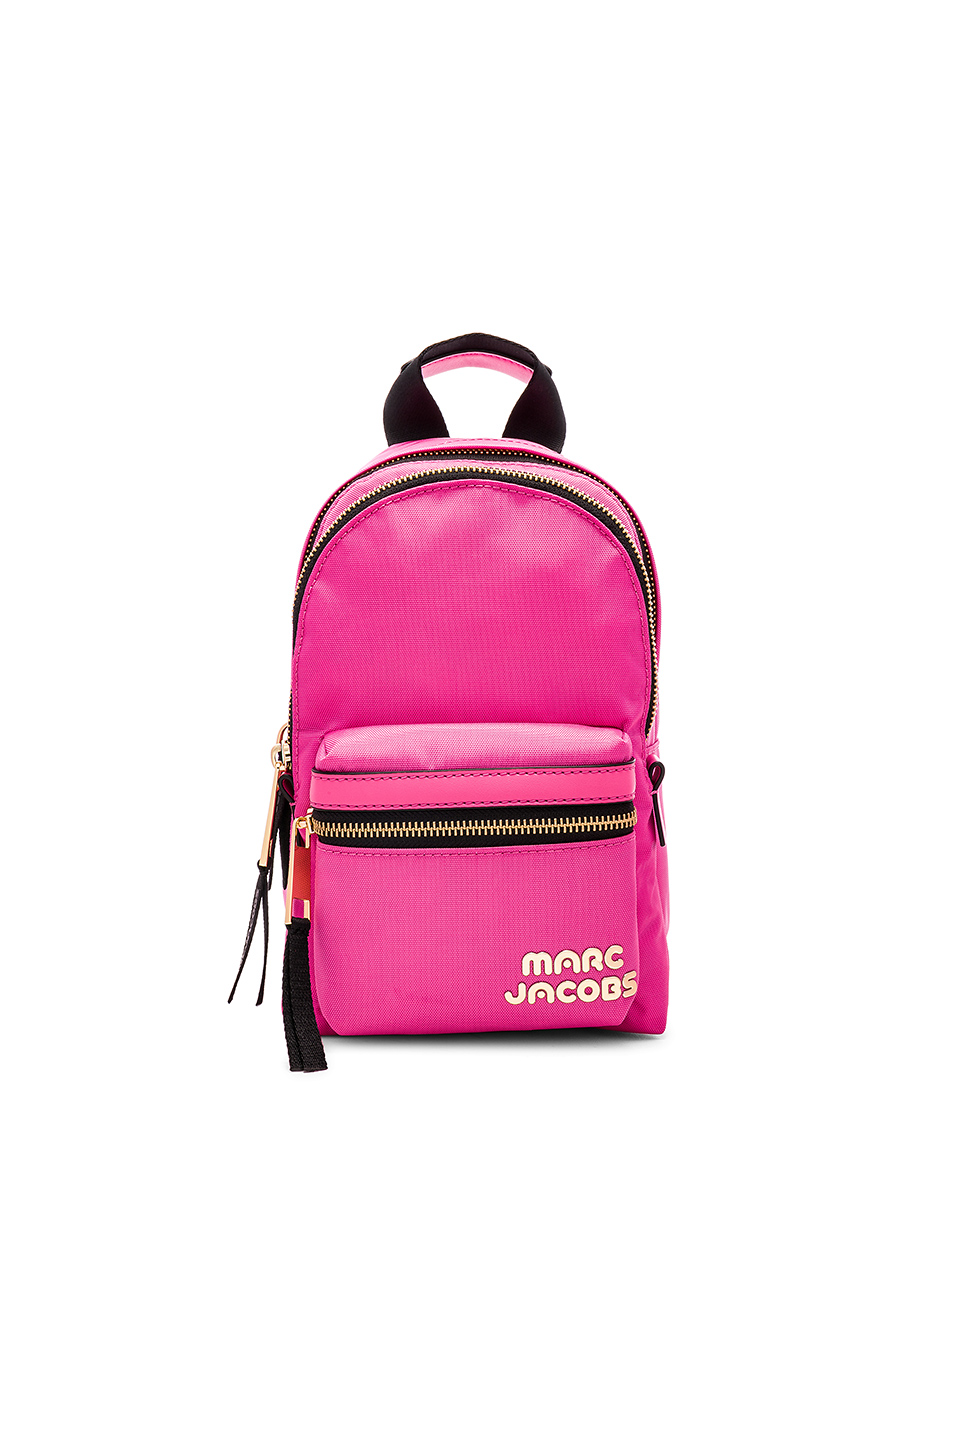 9287c54c0 Buy Original Marc Jacobs Mini Backpack at Indonesia | BOBOBOBO